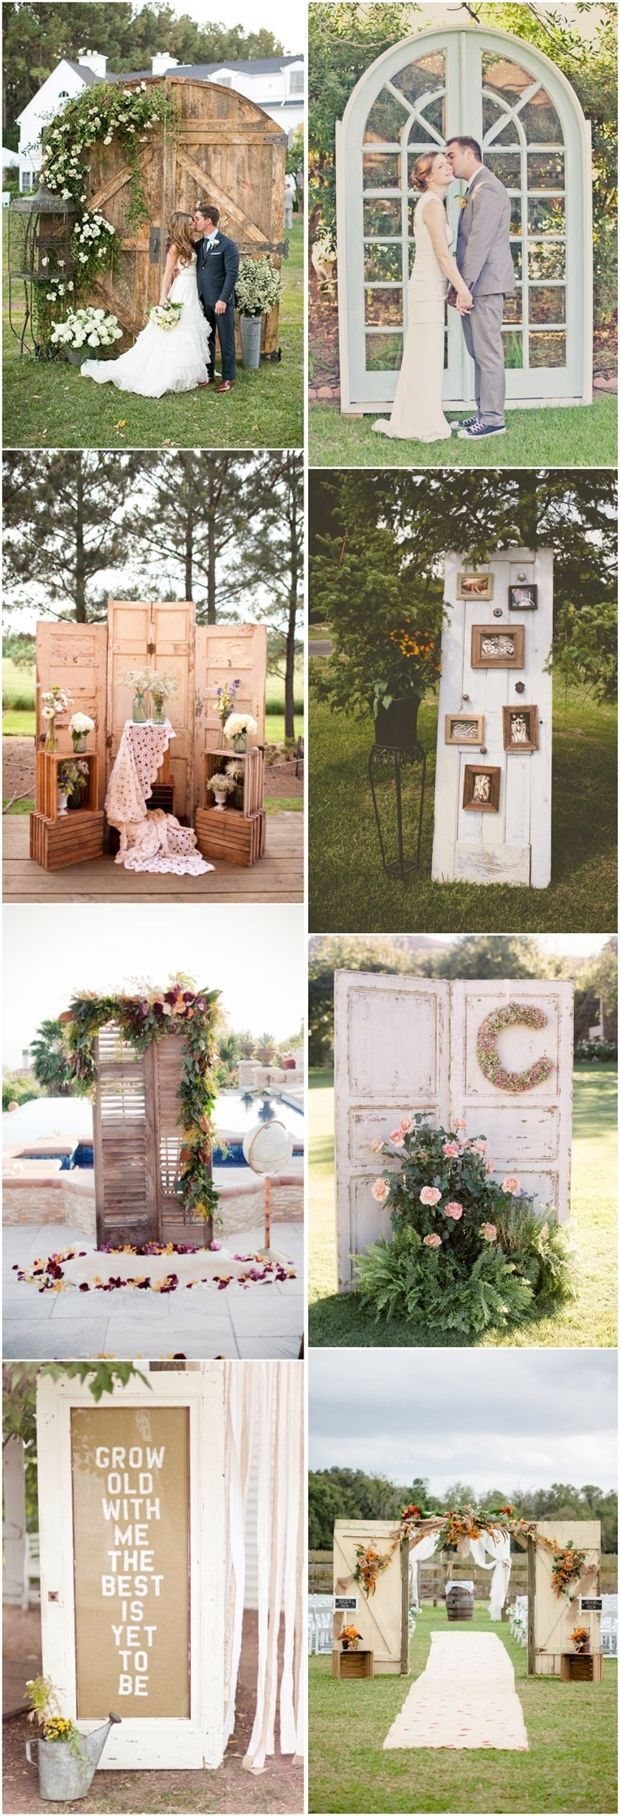 rustic old door wedding ideas- country outdoor wedding decors / http://www.deerpearlflowers.com/rustic-old-door-wedding-decor-ideas-for-outdoor-country-weddings/